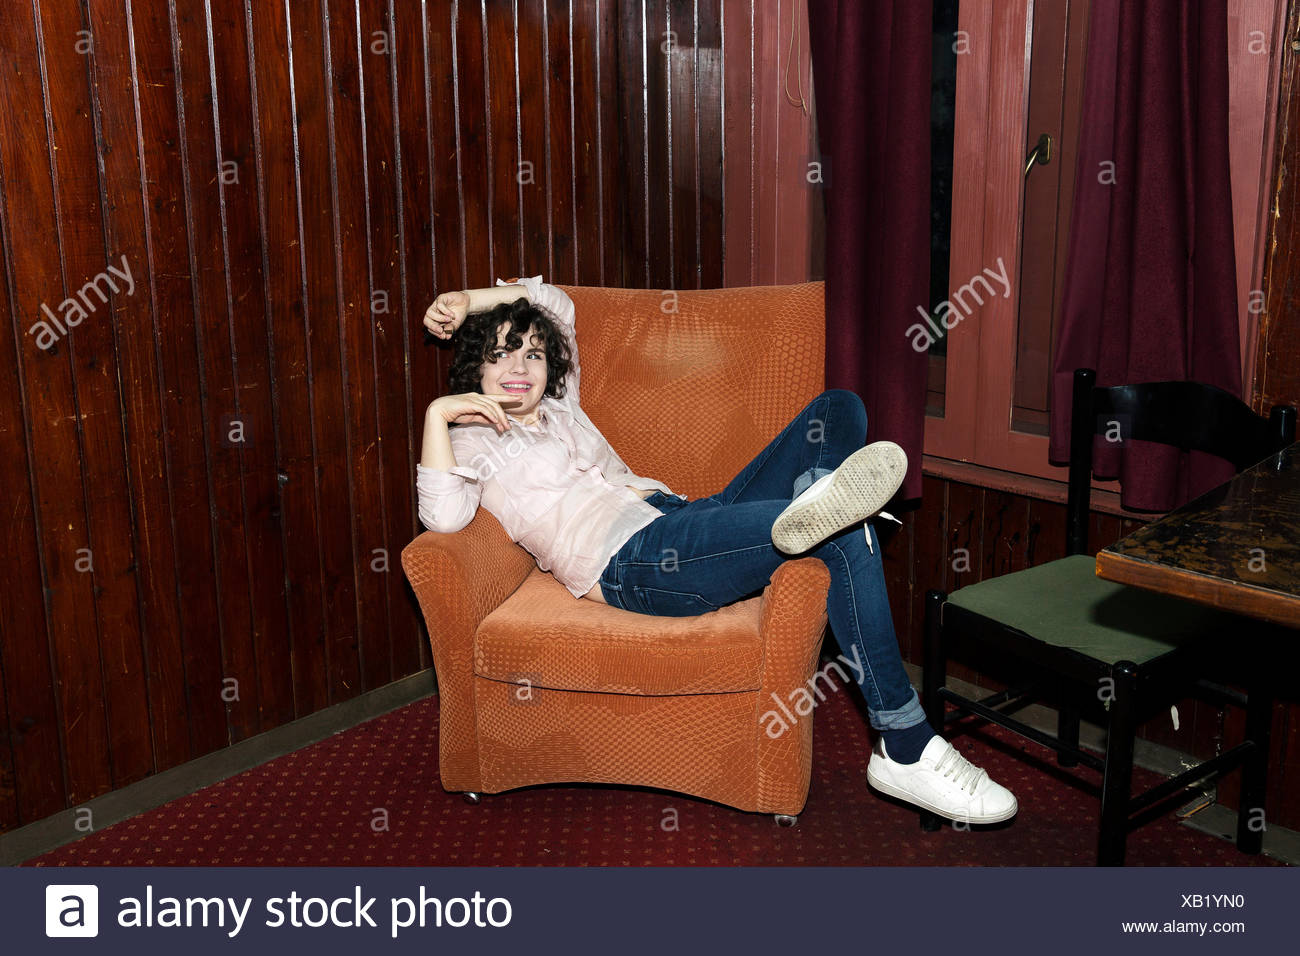 Portrait of young woman reclining on armchair on night out in bar - Stock Image